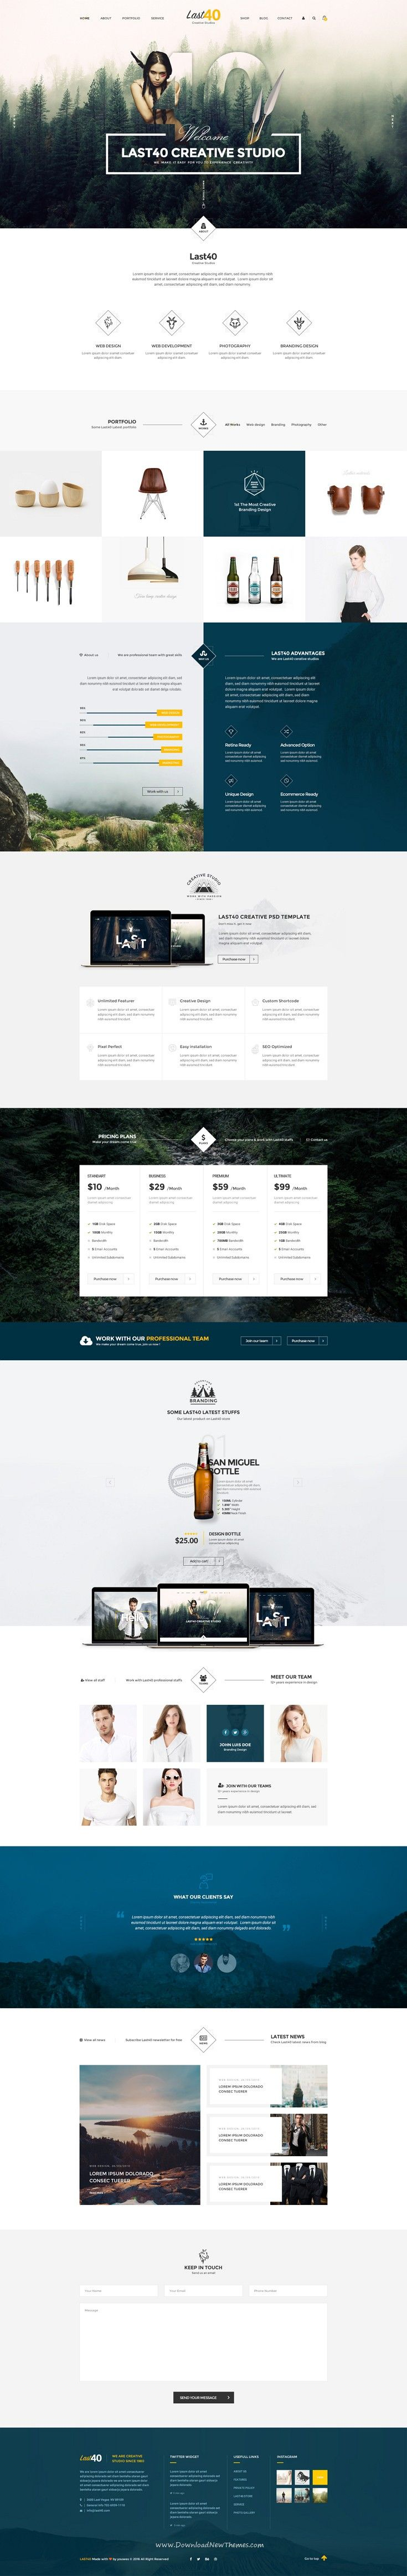 Last40 is Creative PSD Template for #multipurpose website. It comes with 4 stunning homepage layouts. #psdtemplate